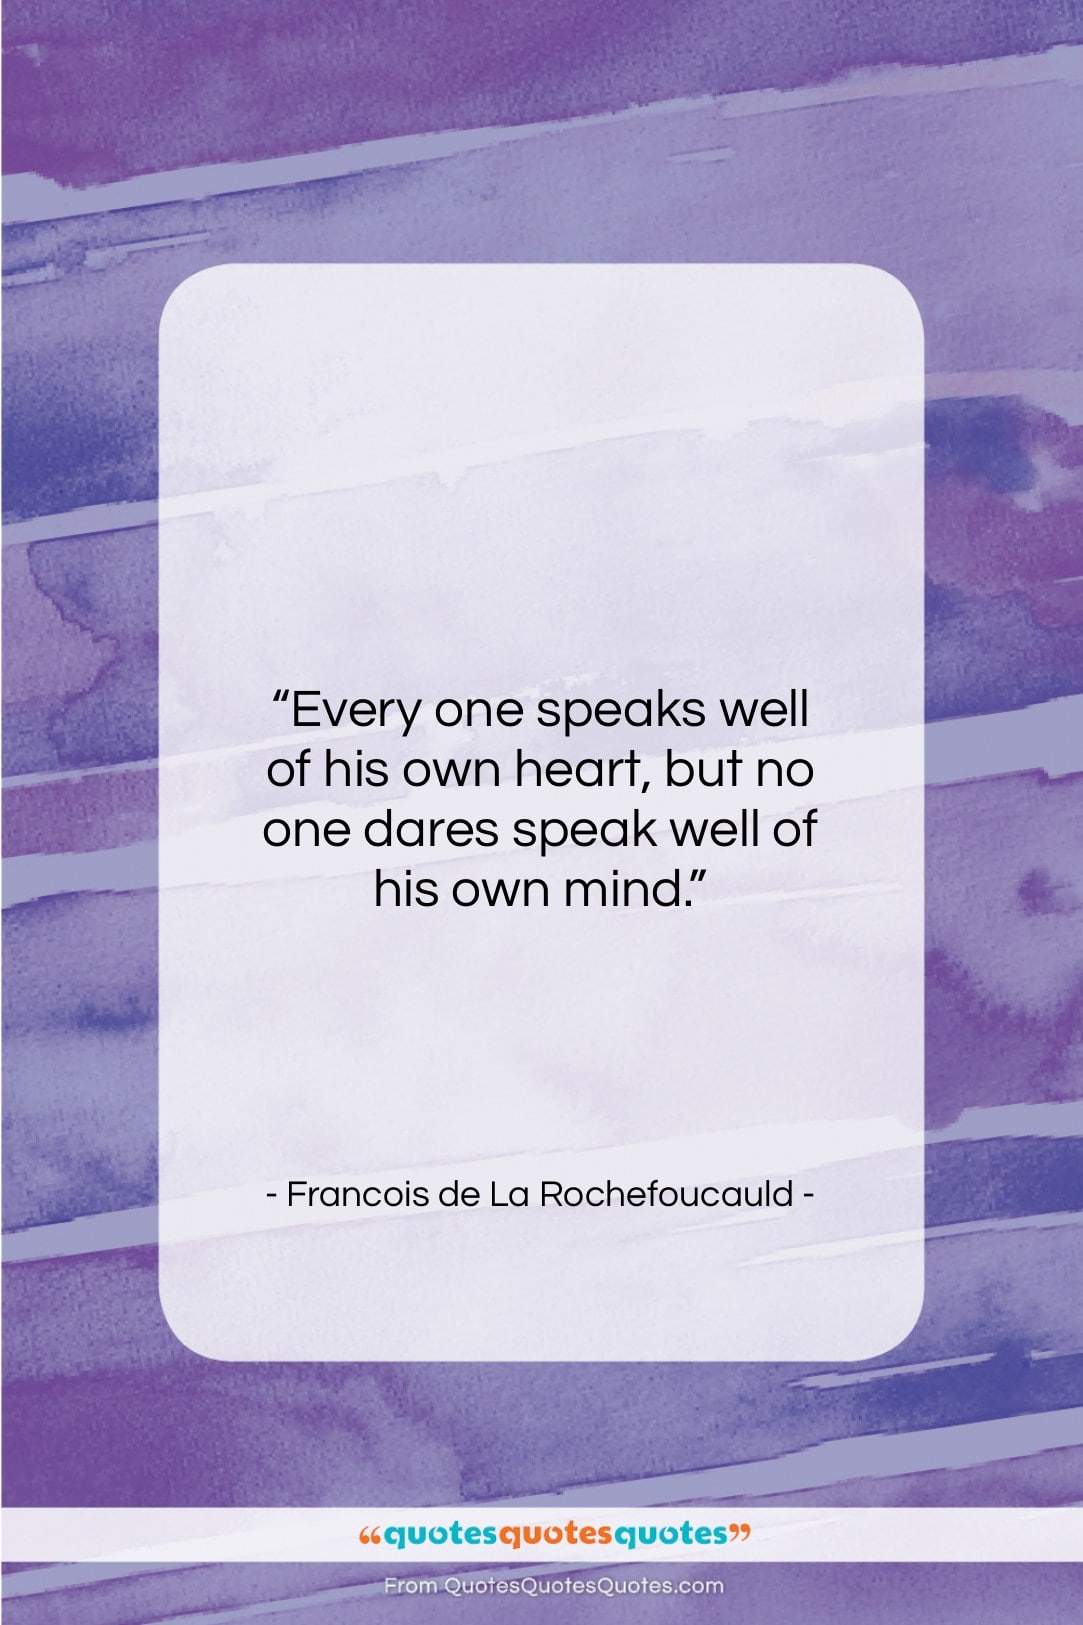 """Francois de La Rochefoucauld quote: """"Every one speaks well of his own…""""- at QuotesQuotesQuotes.com"""